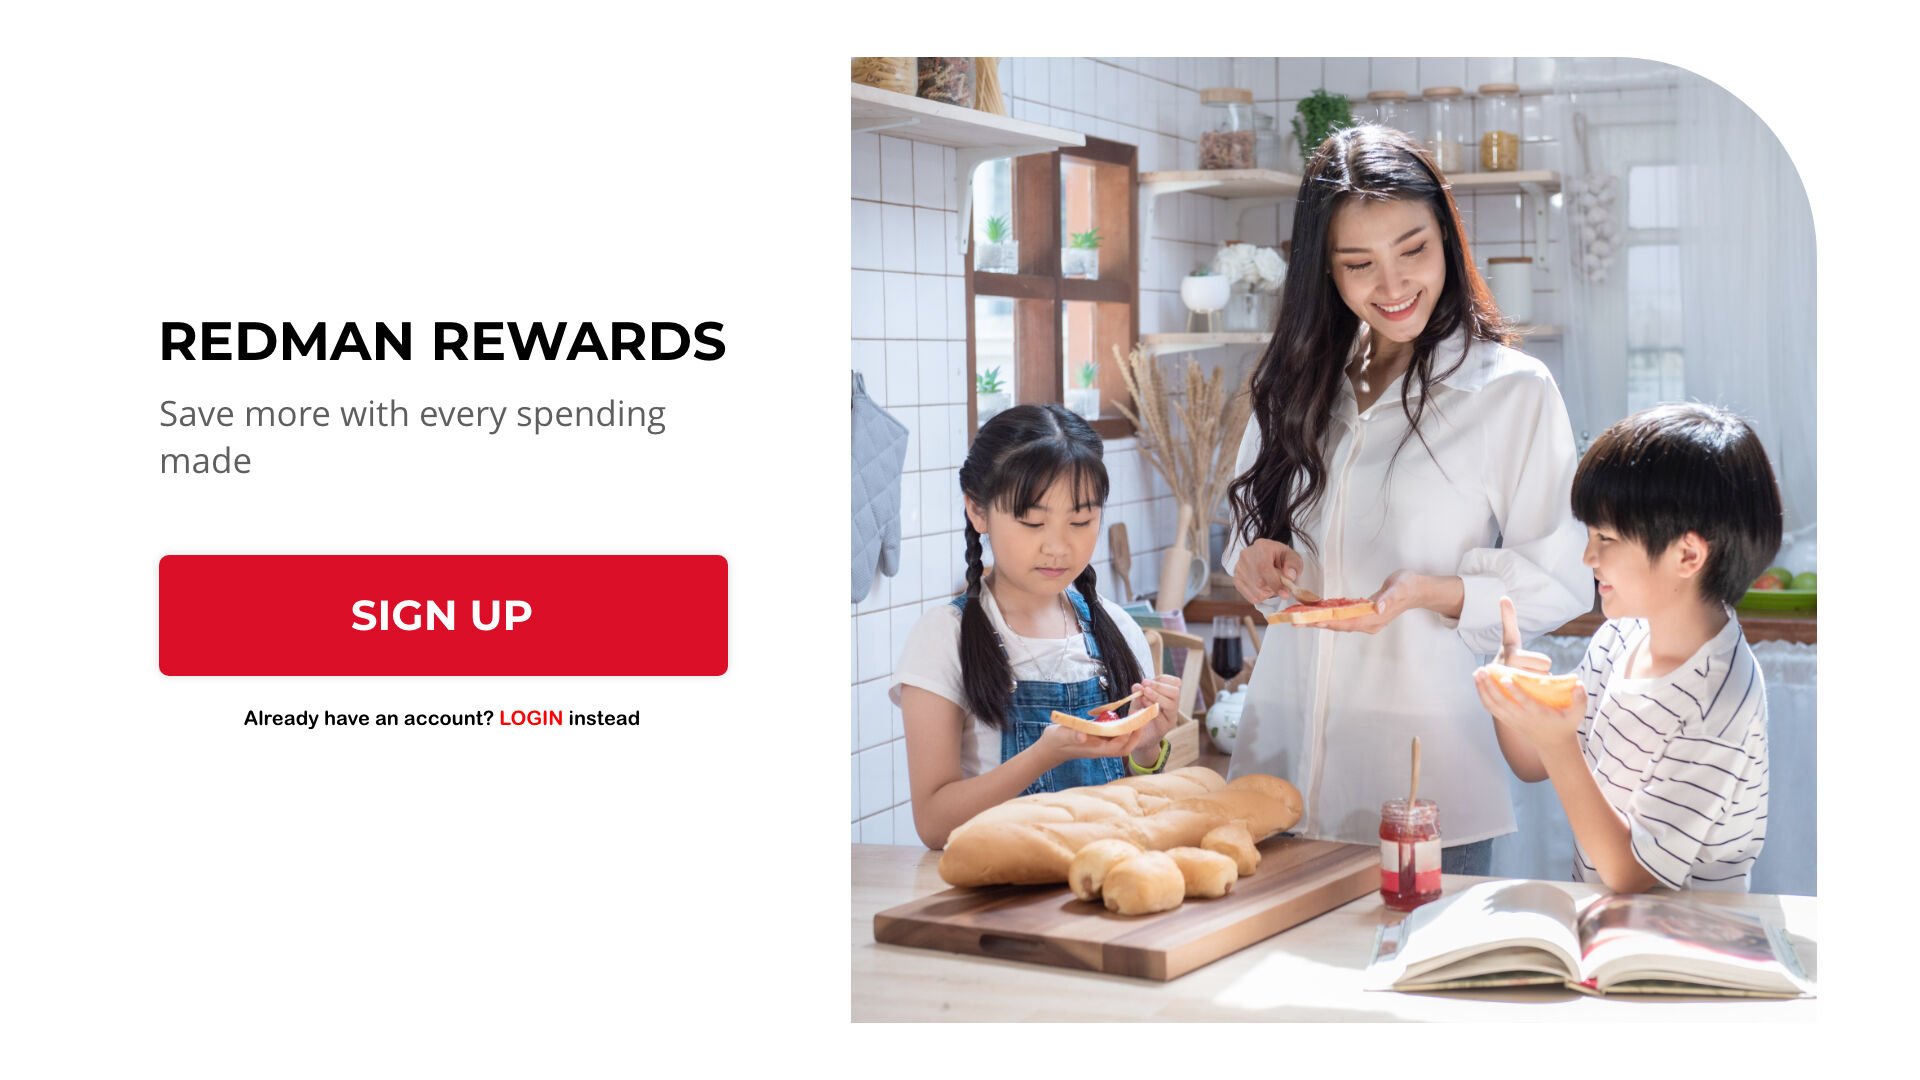 RedMan Rewards   Save more with every spending made